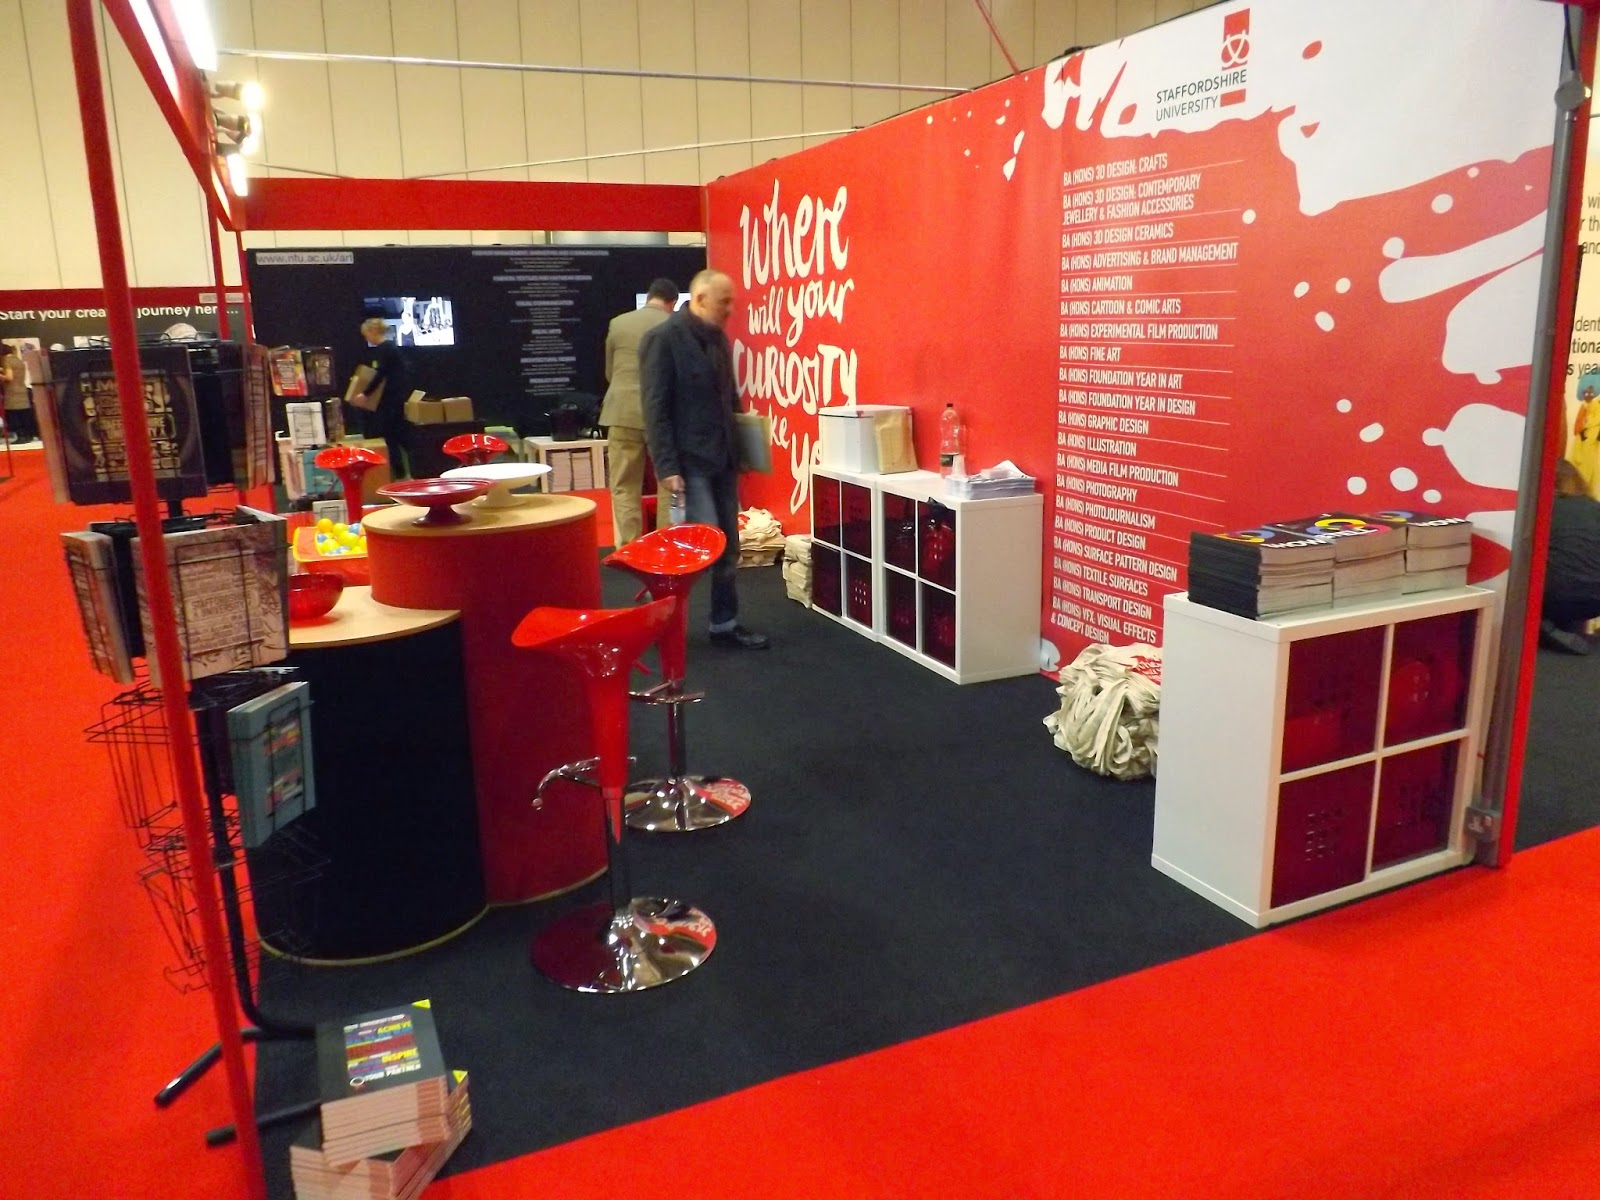 Our Lovely New UCAS Stand Was Taken To London This Week Come And See Us In Manchester On 24th 25th Novemberhave A Dip The Ball Pit Of